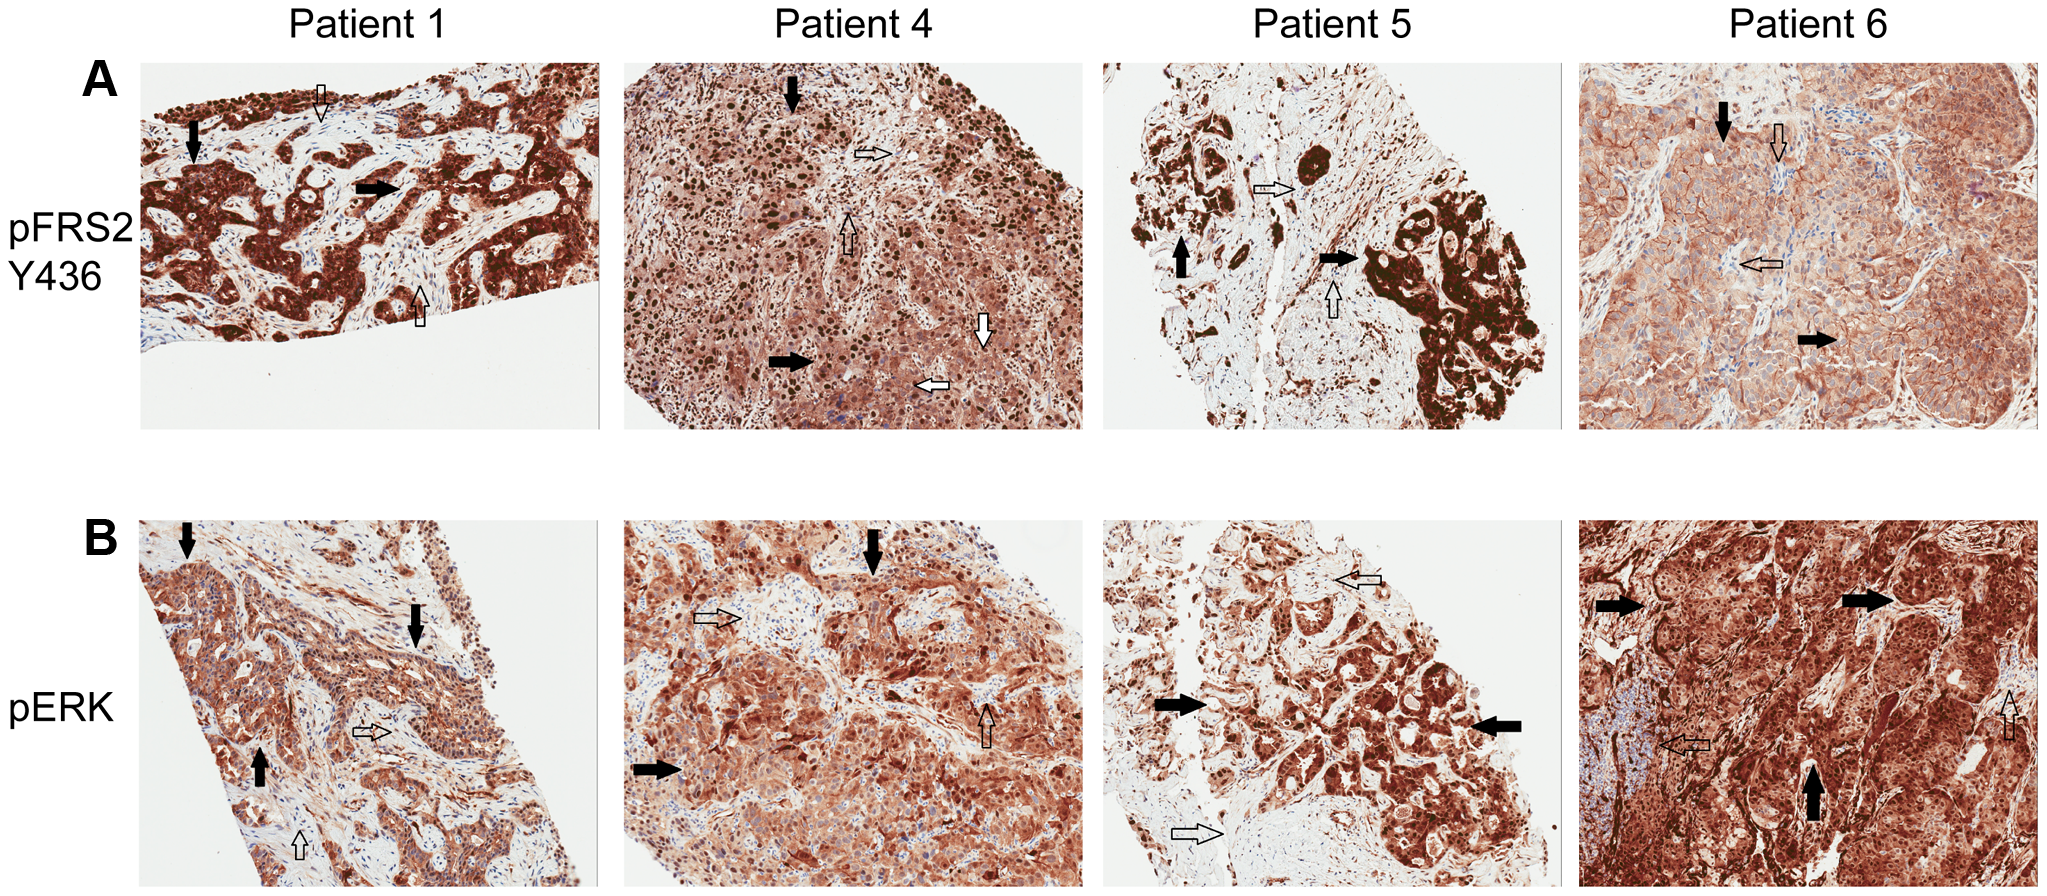 Immunohistochemistry demonstrating pFRS2 Y436, and pERK expression in Patients 1, 4, 5 and 6.